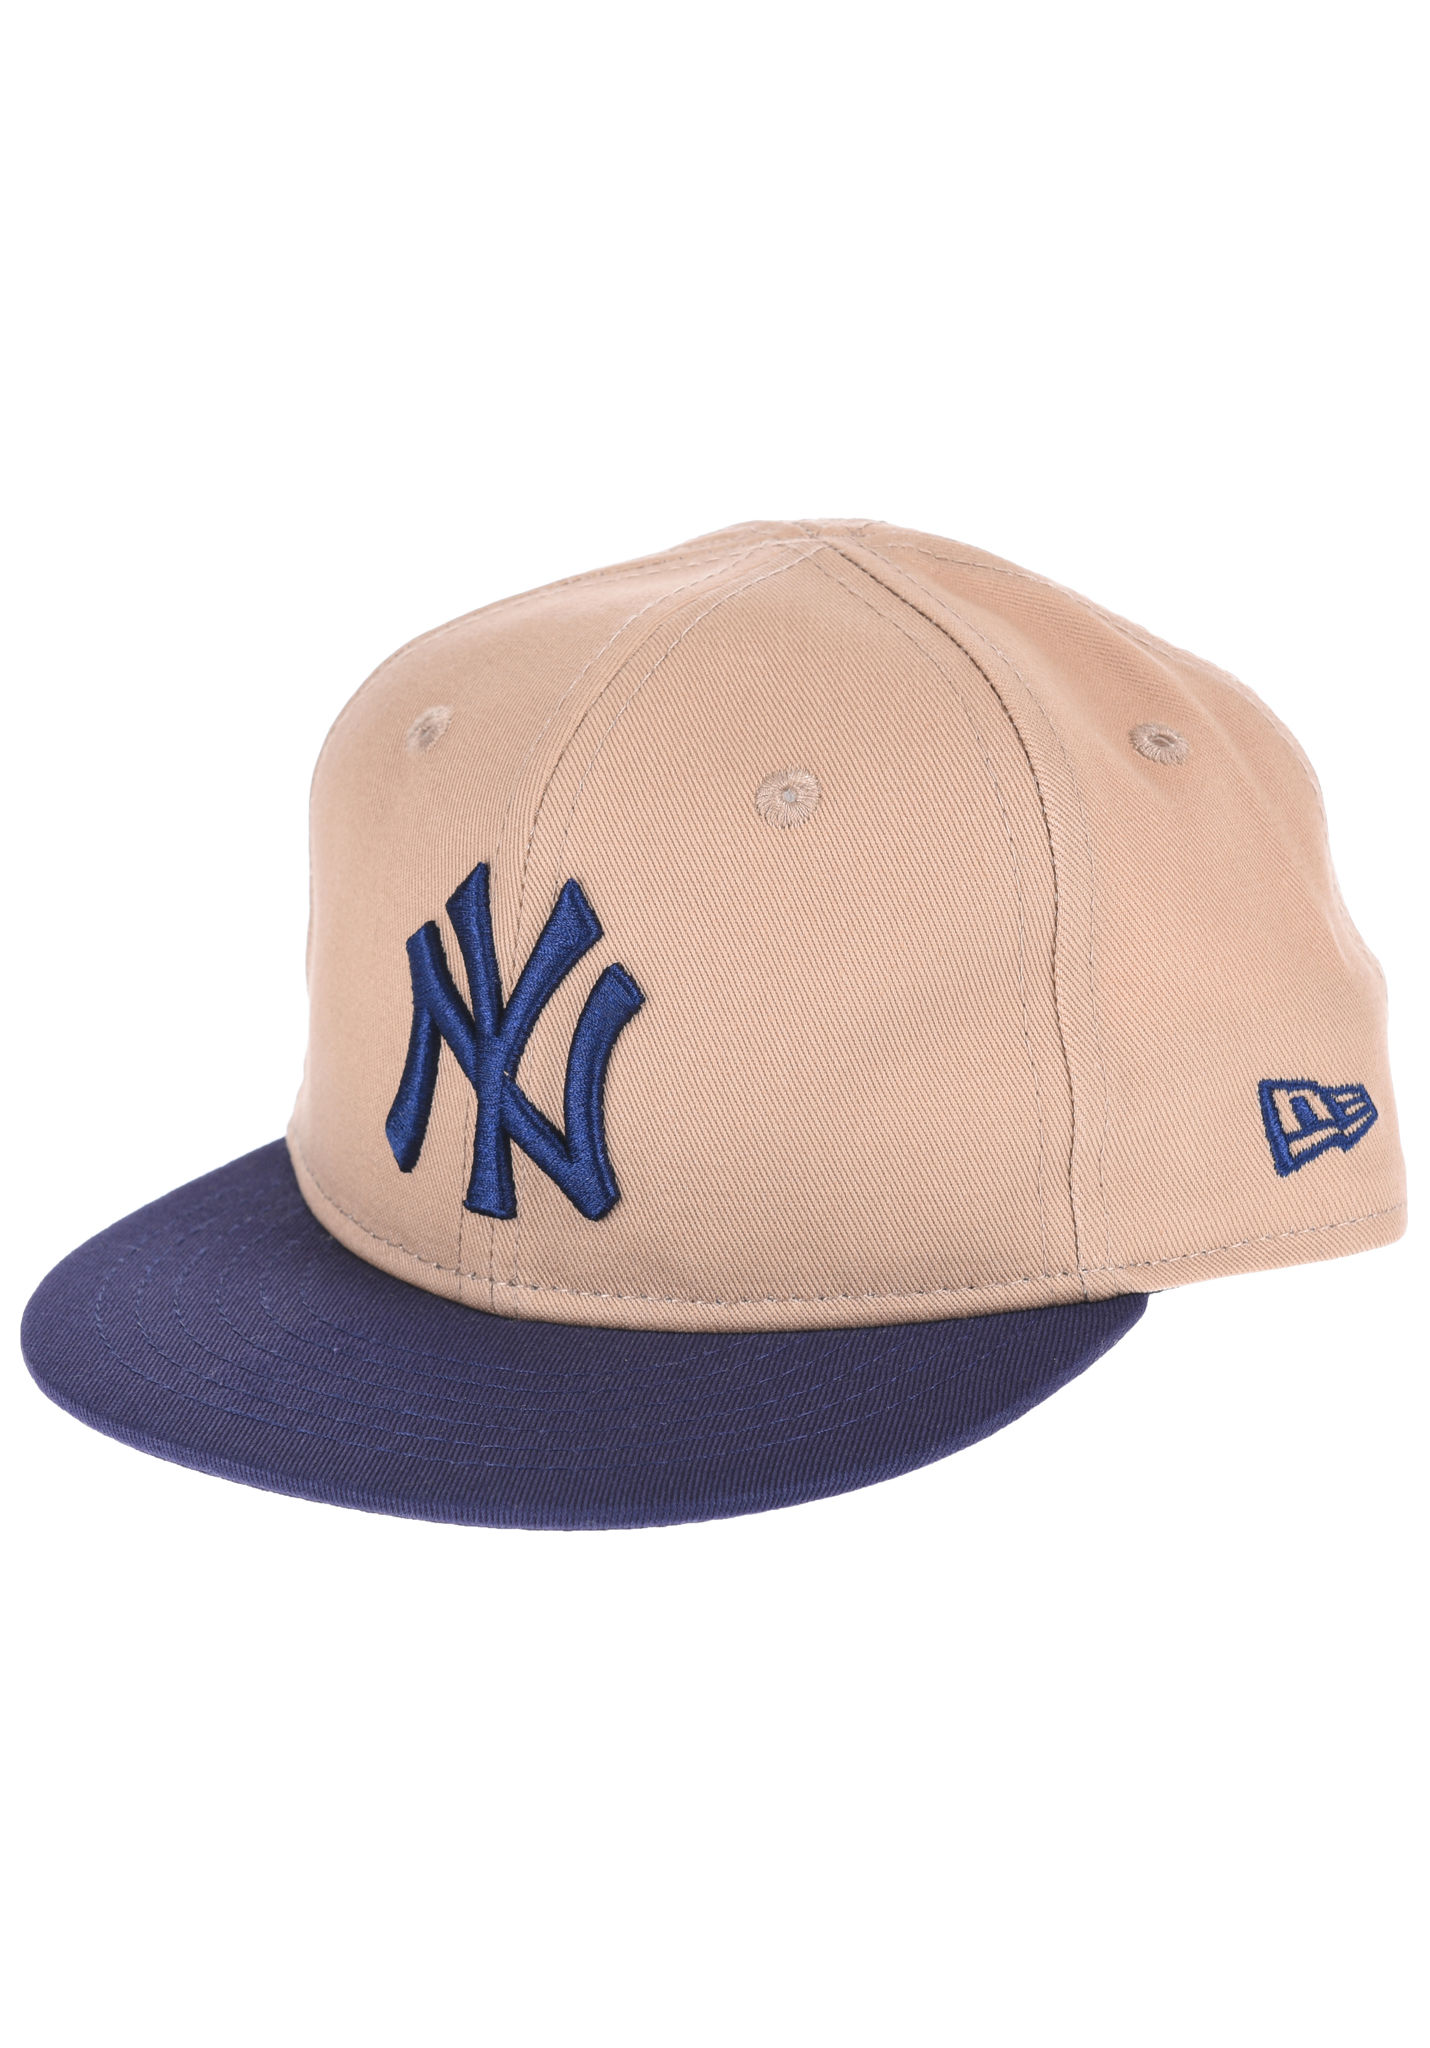 a1122734104 NEW Era Essential 9Fifty New York Yankees - Snapback Cap for Kids Boys -  Beige - Planet Sports